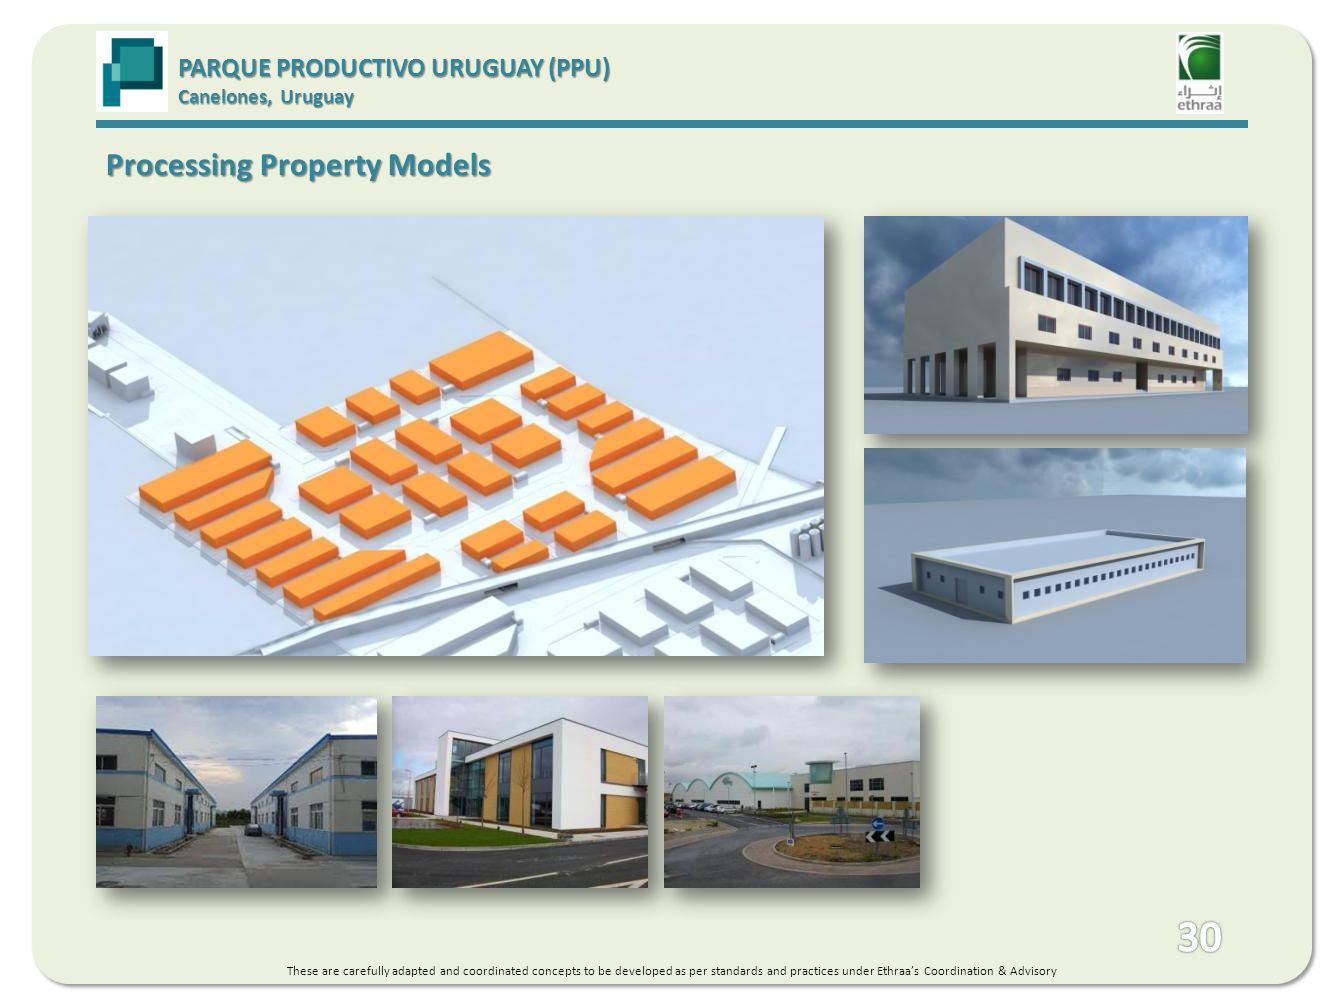 Processing Property Models PARQUE PRODUCTIVO URUGUAY (PPU) Canelones, Uruguay These are carefully adapted and coordinated concepts to be developed as per standards and practices under Ethraas Coordination & Advisory